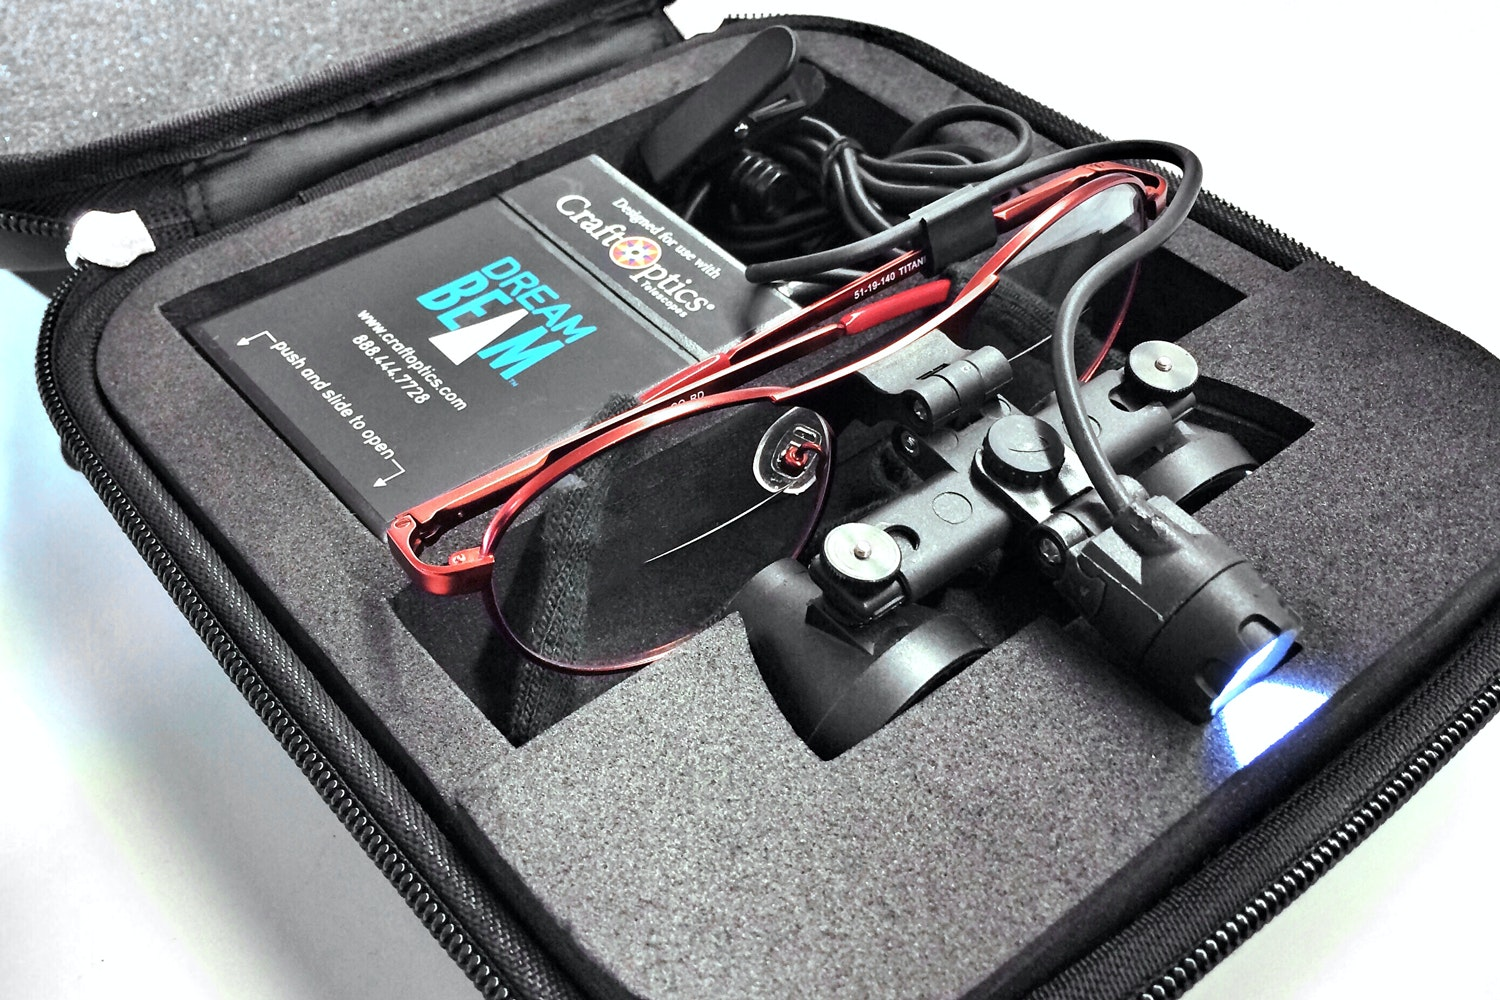 Large case included when purchasing both glasses and light